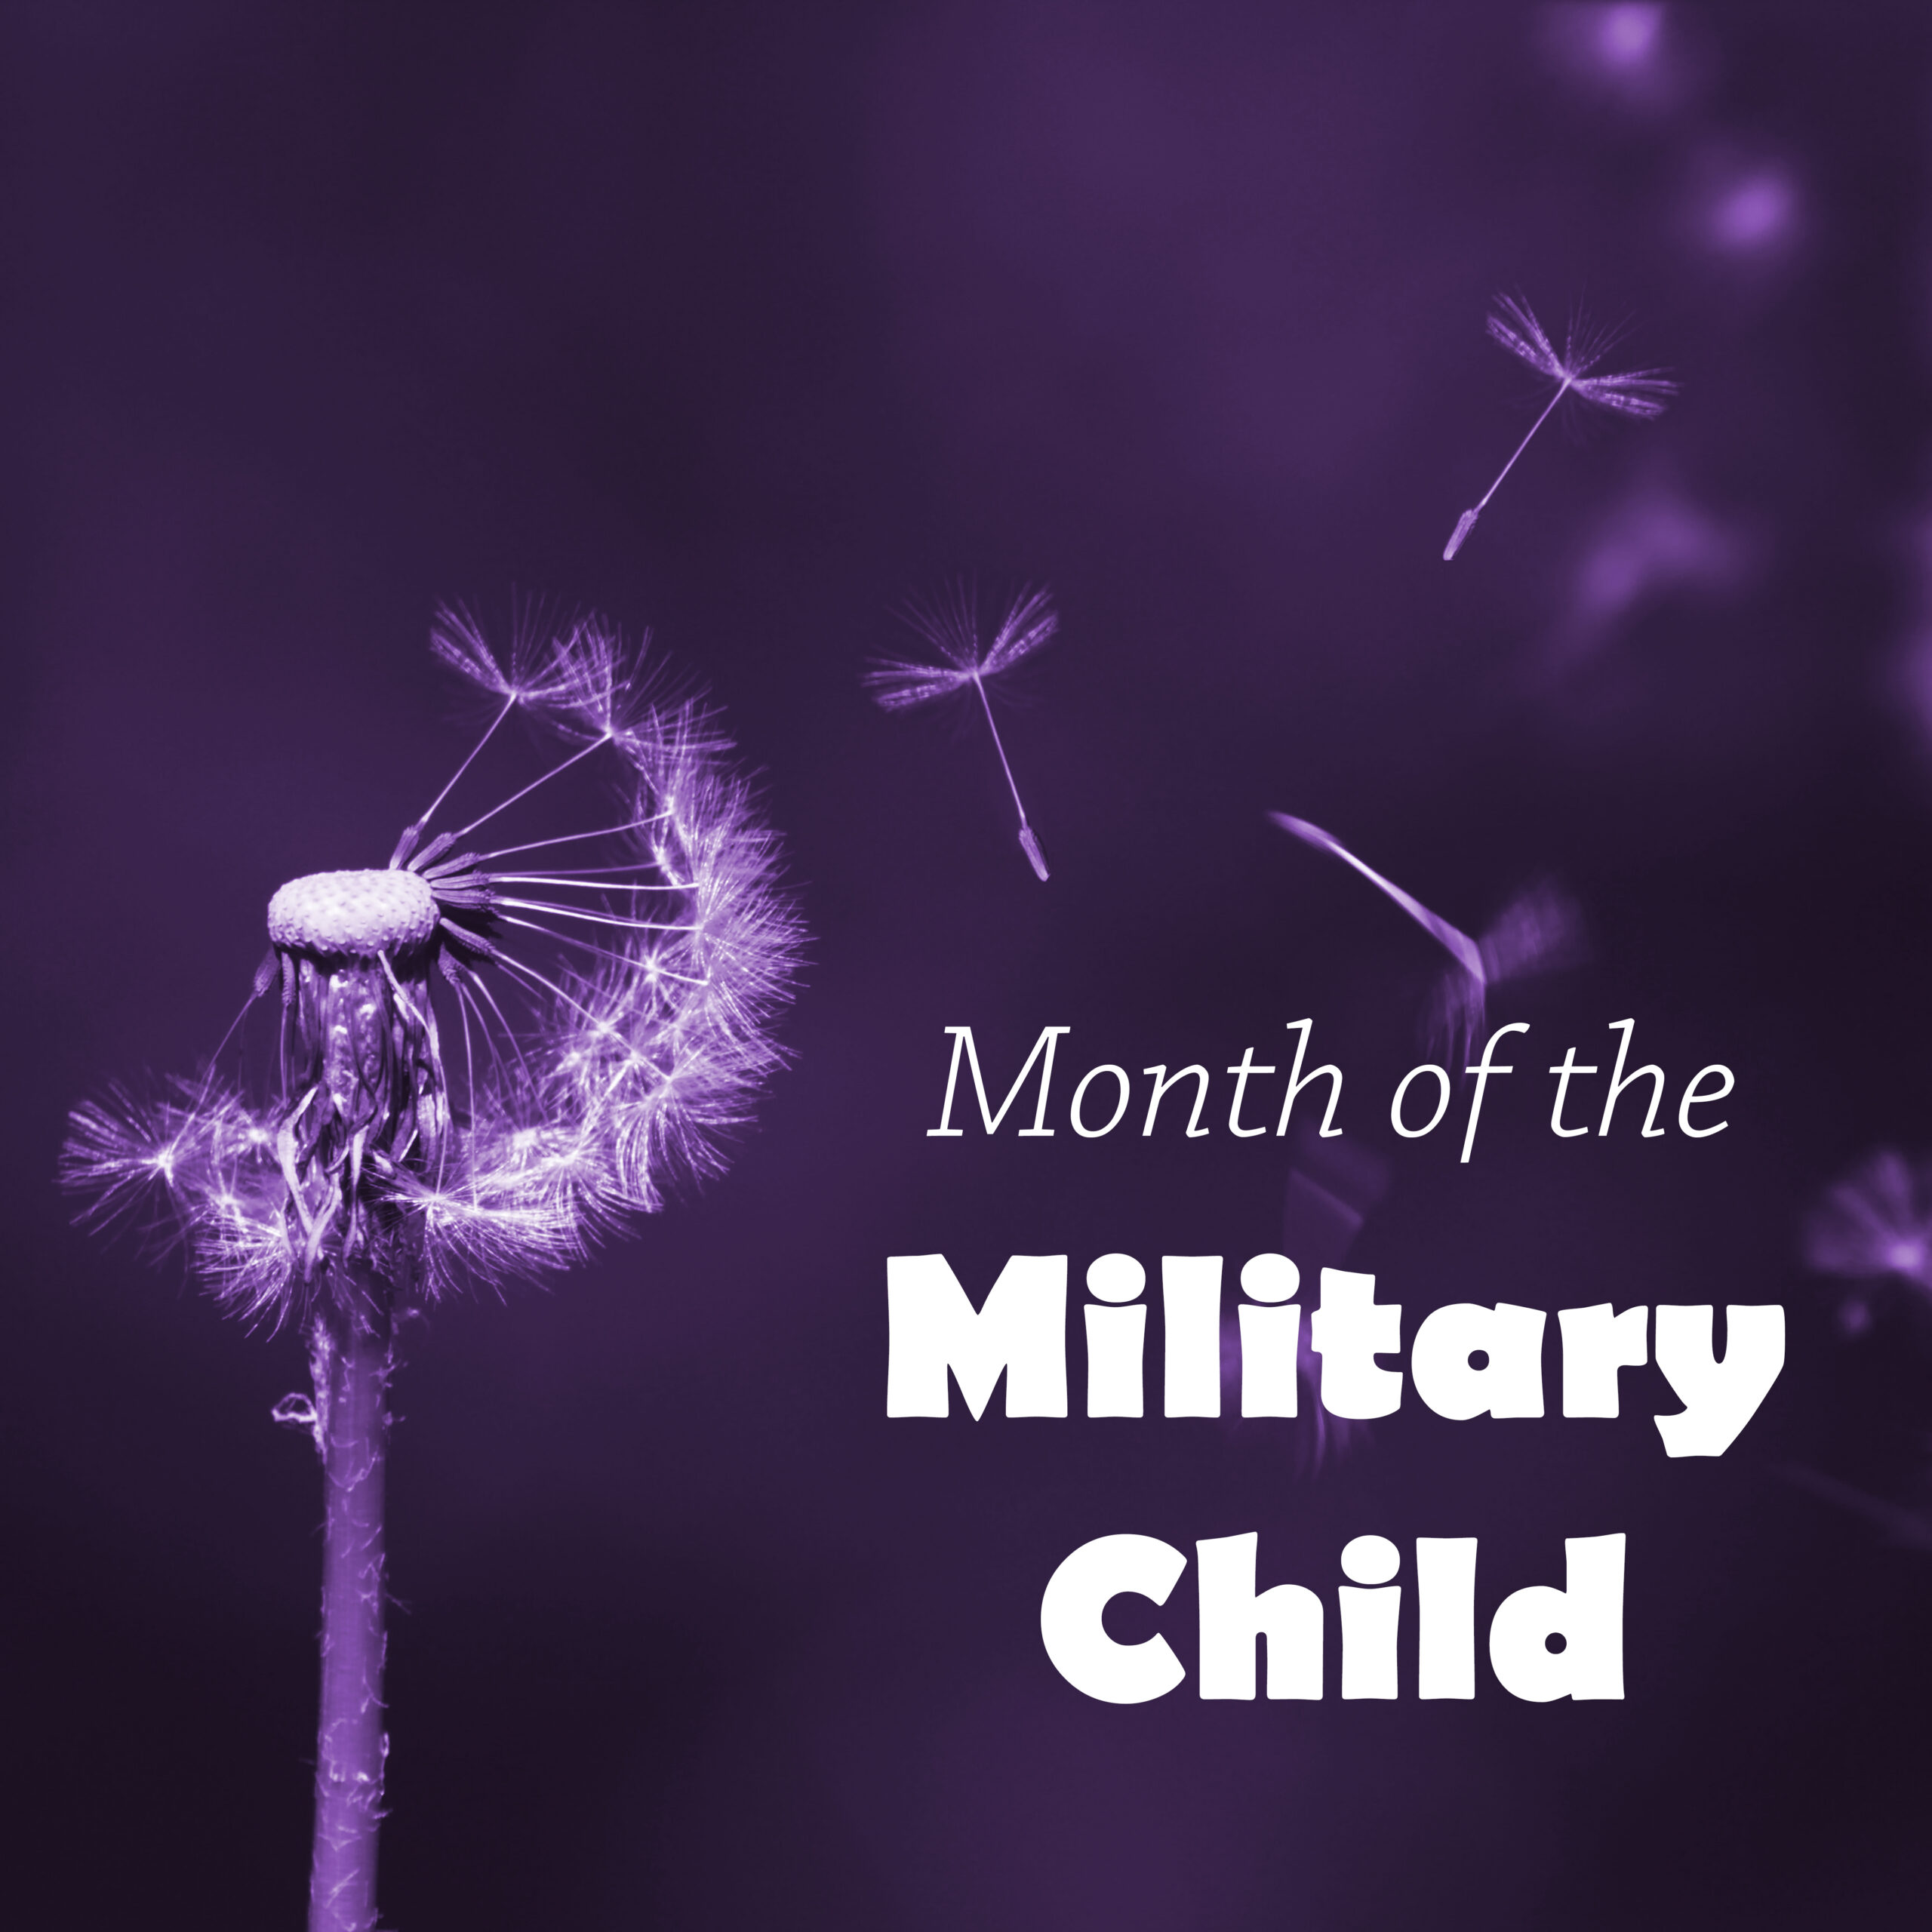 Foundation celebrates Month of the Military Child